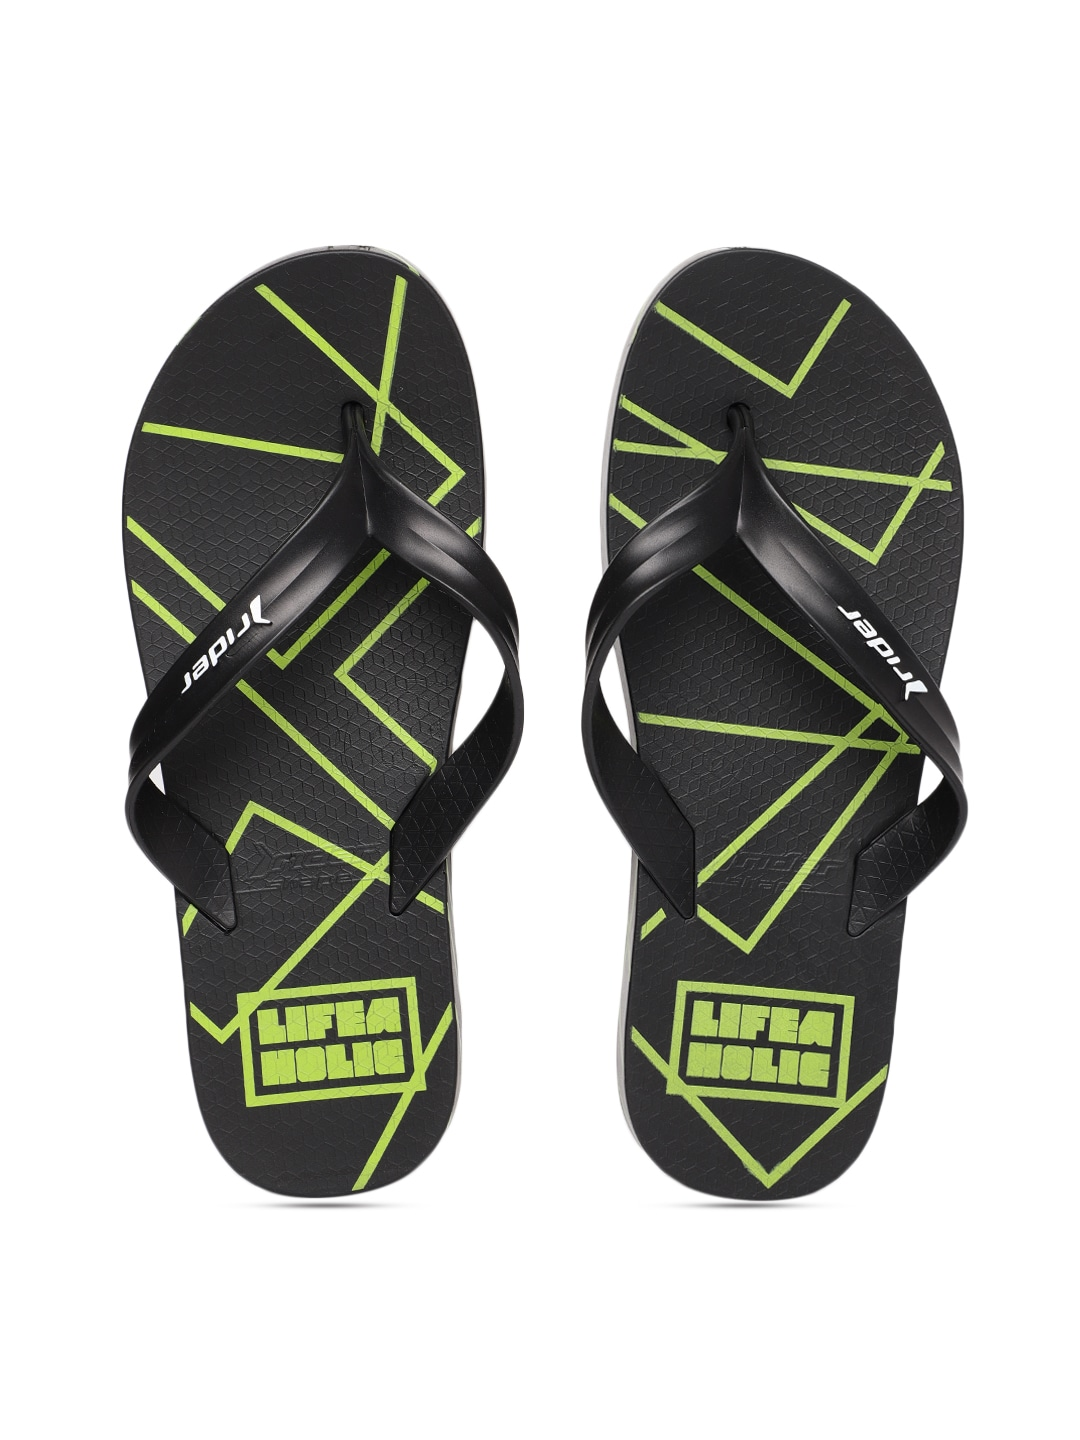 cb8bc990d Men Flip Flops Bags Sandals - Buy Men Flip Flops Bags Sandals online in  India